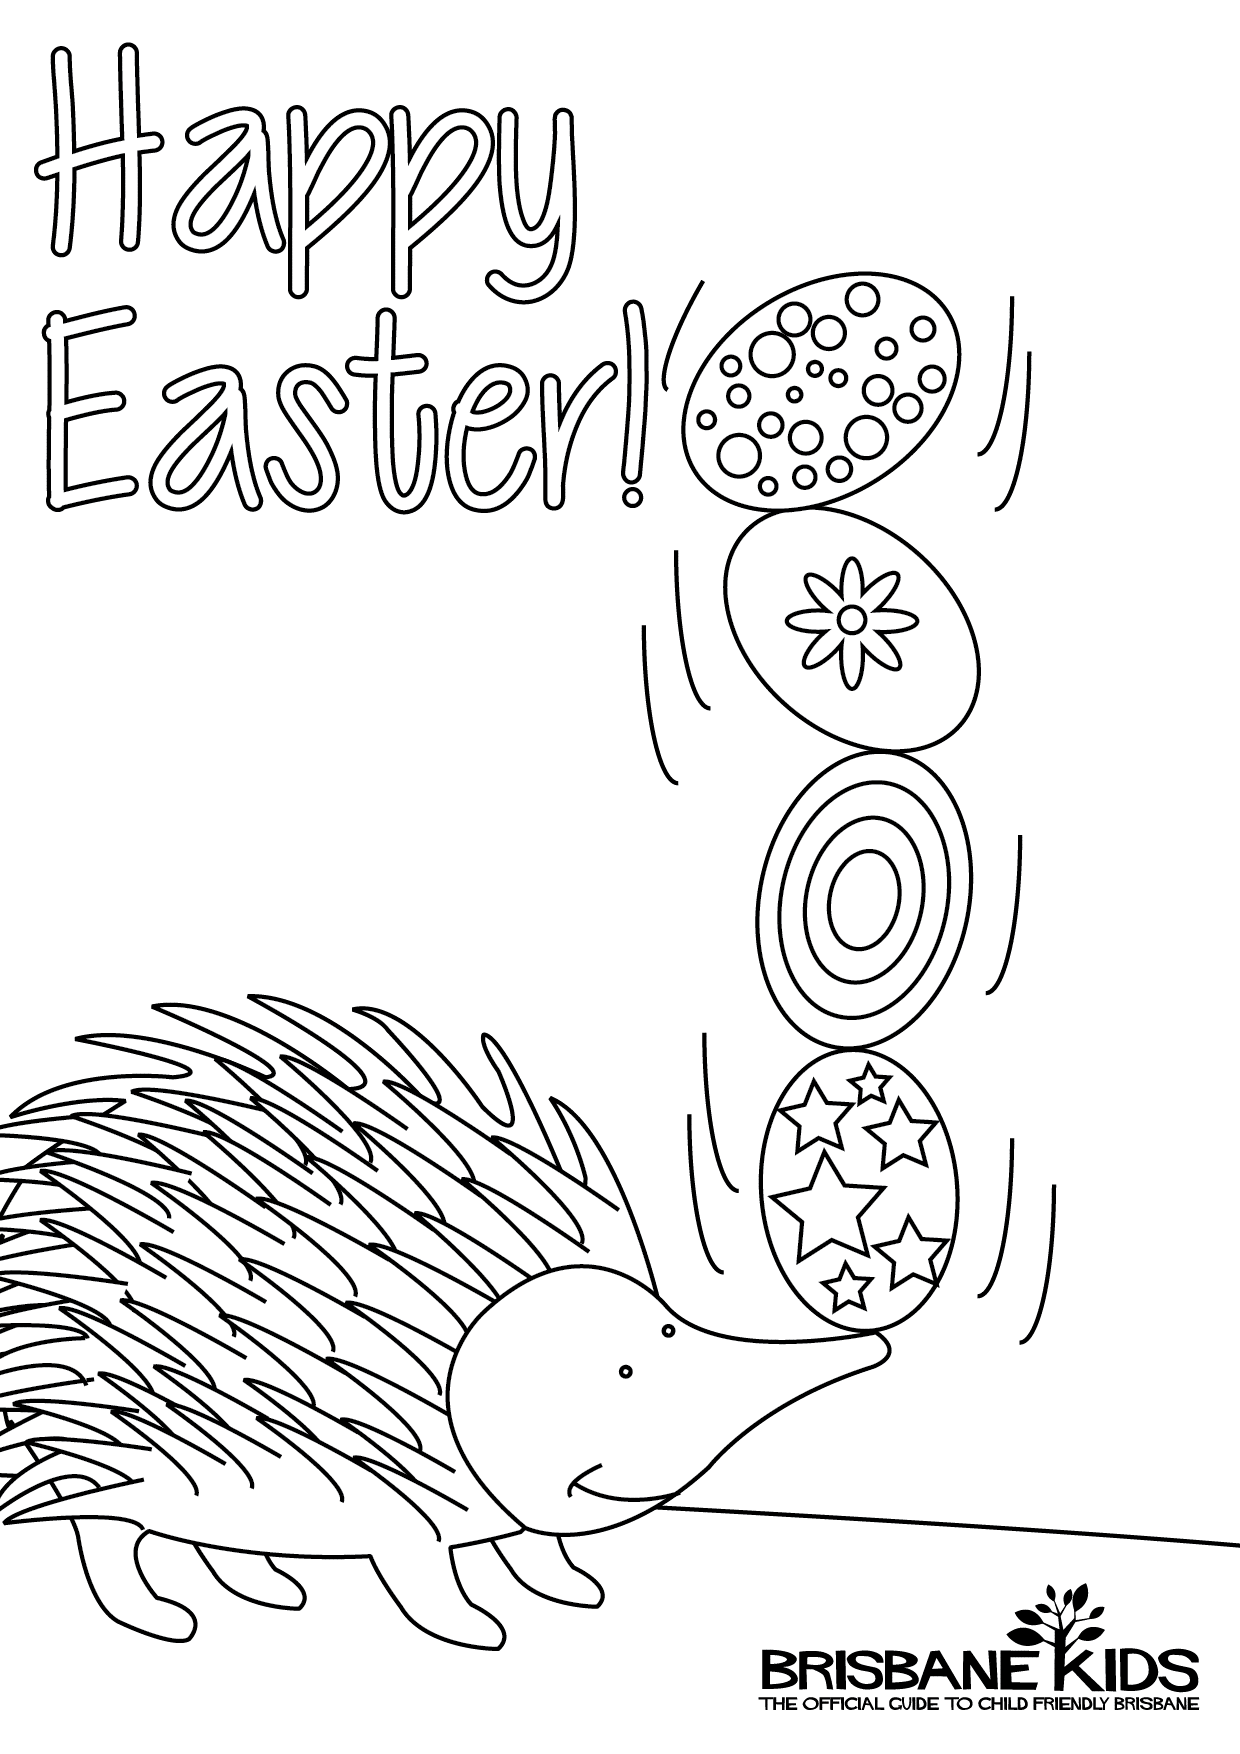 BK Easter Colouring -05